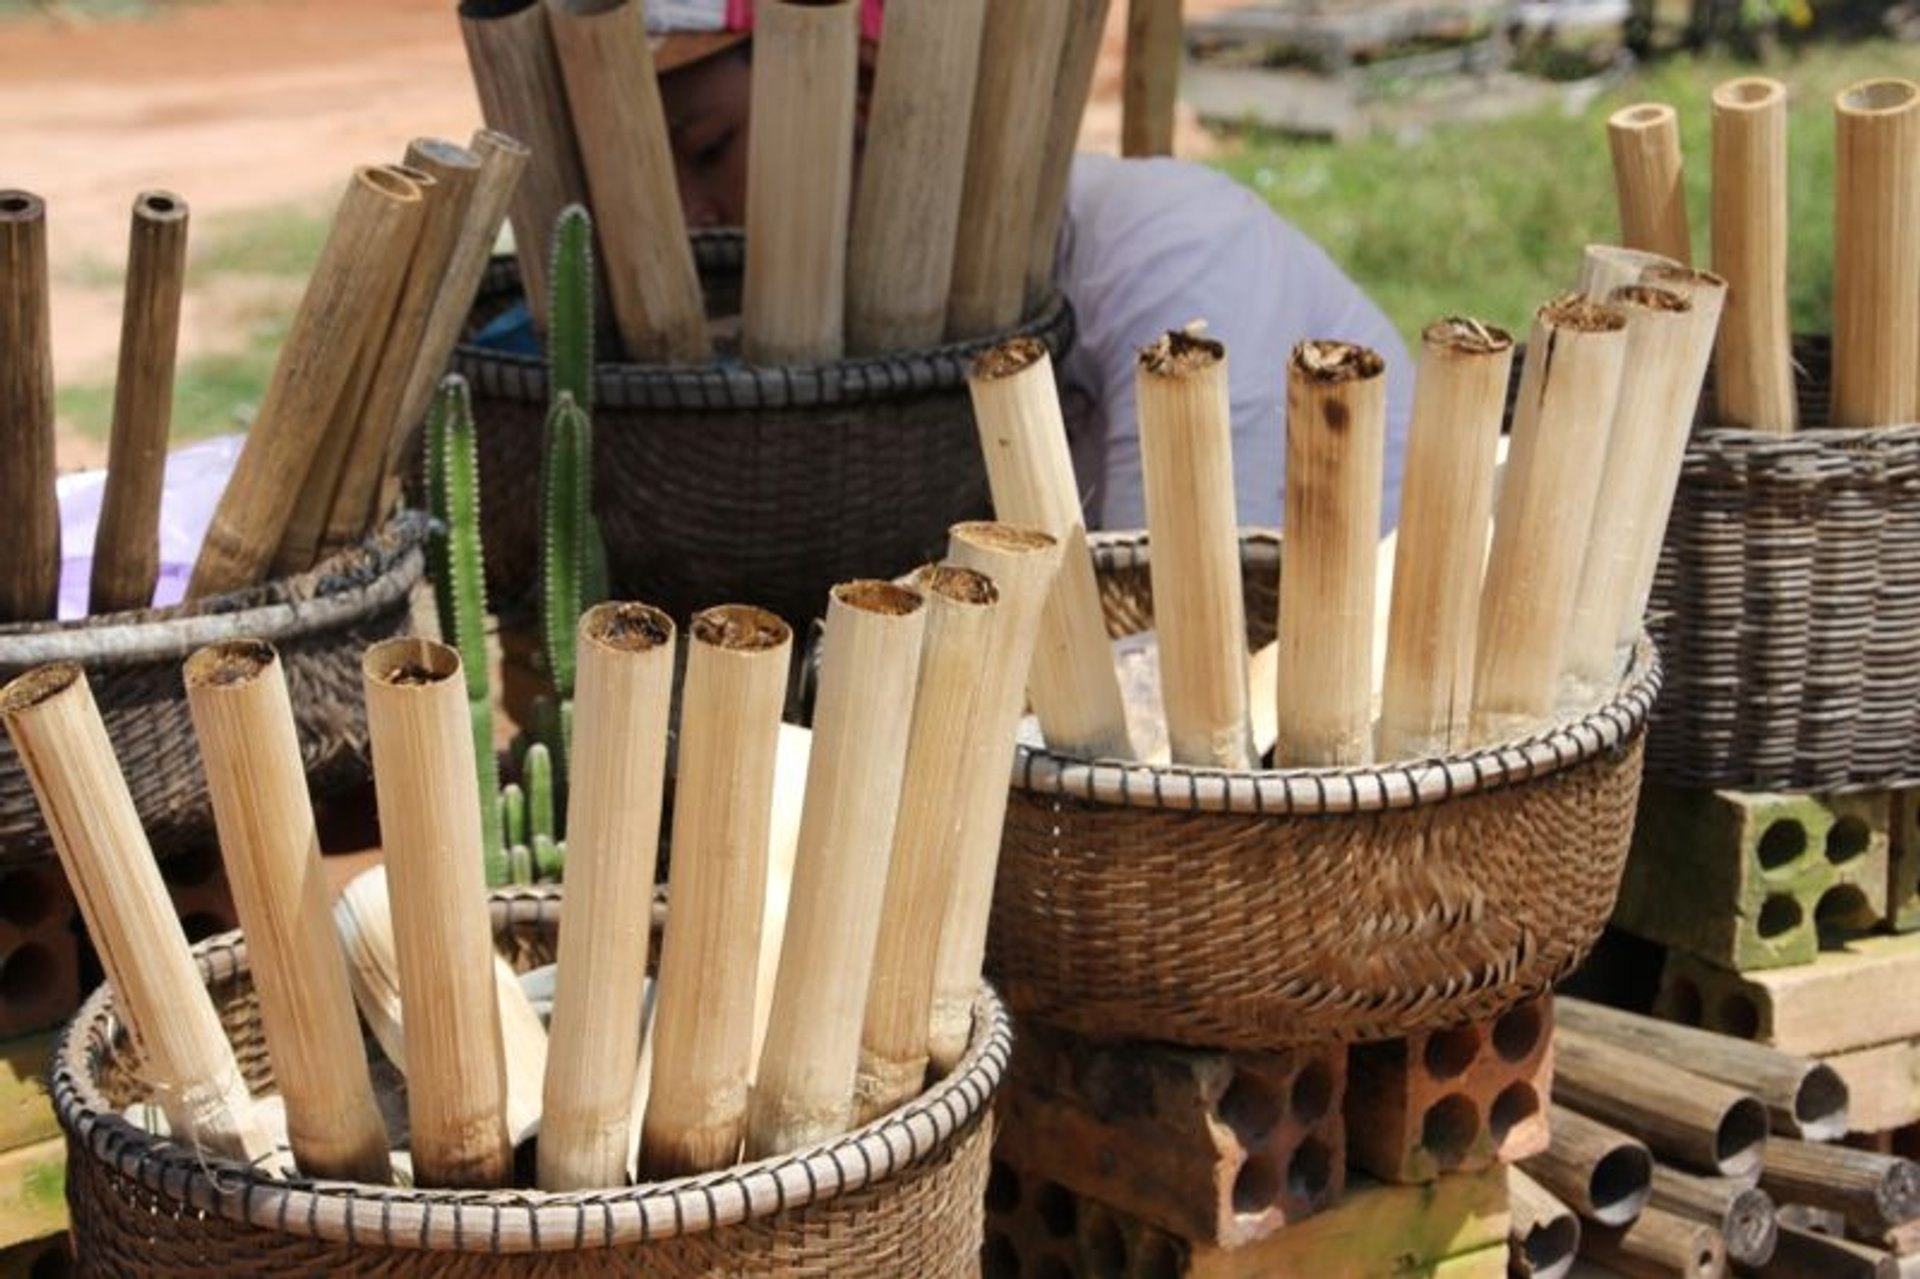 Khao Lam Rice in Bamboo in Laos - Best Season